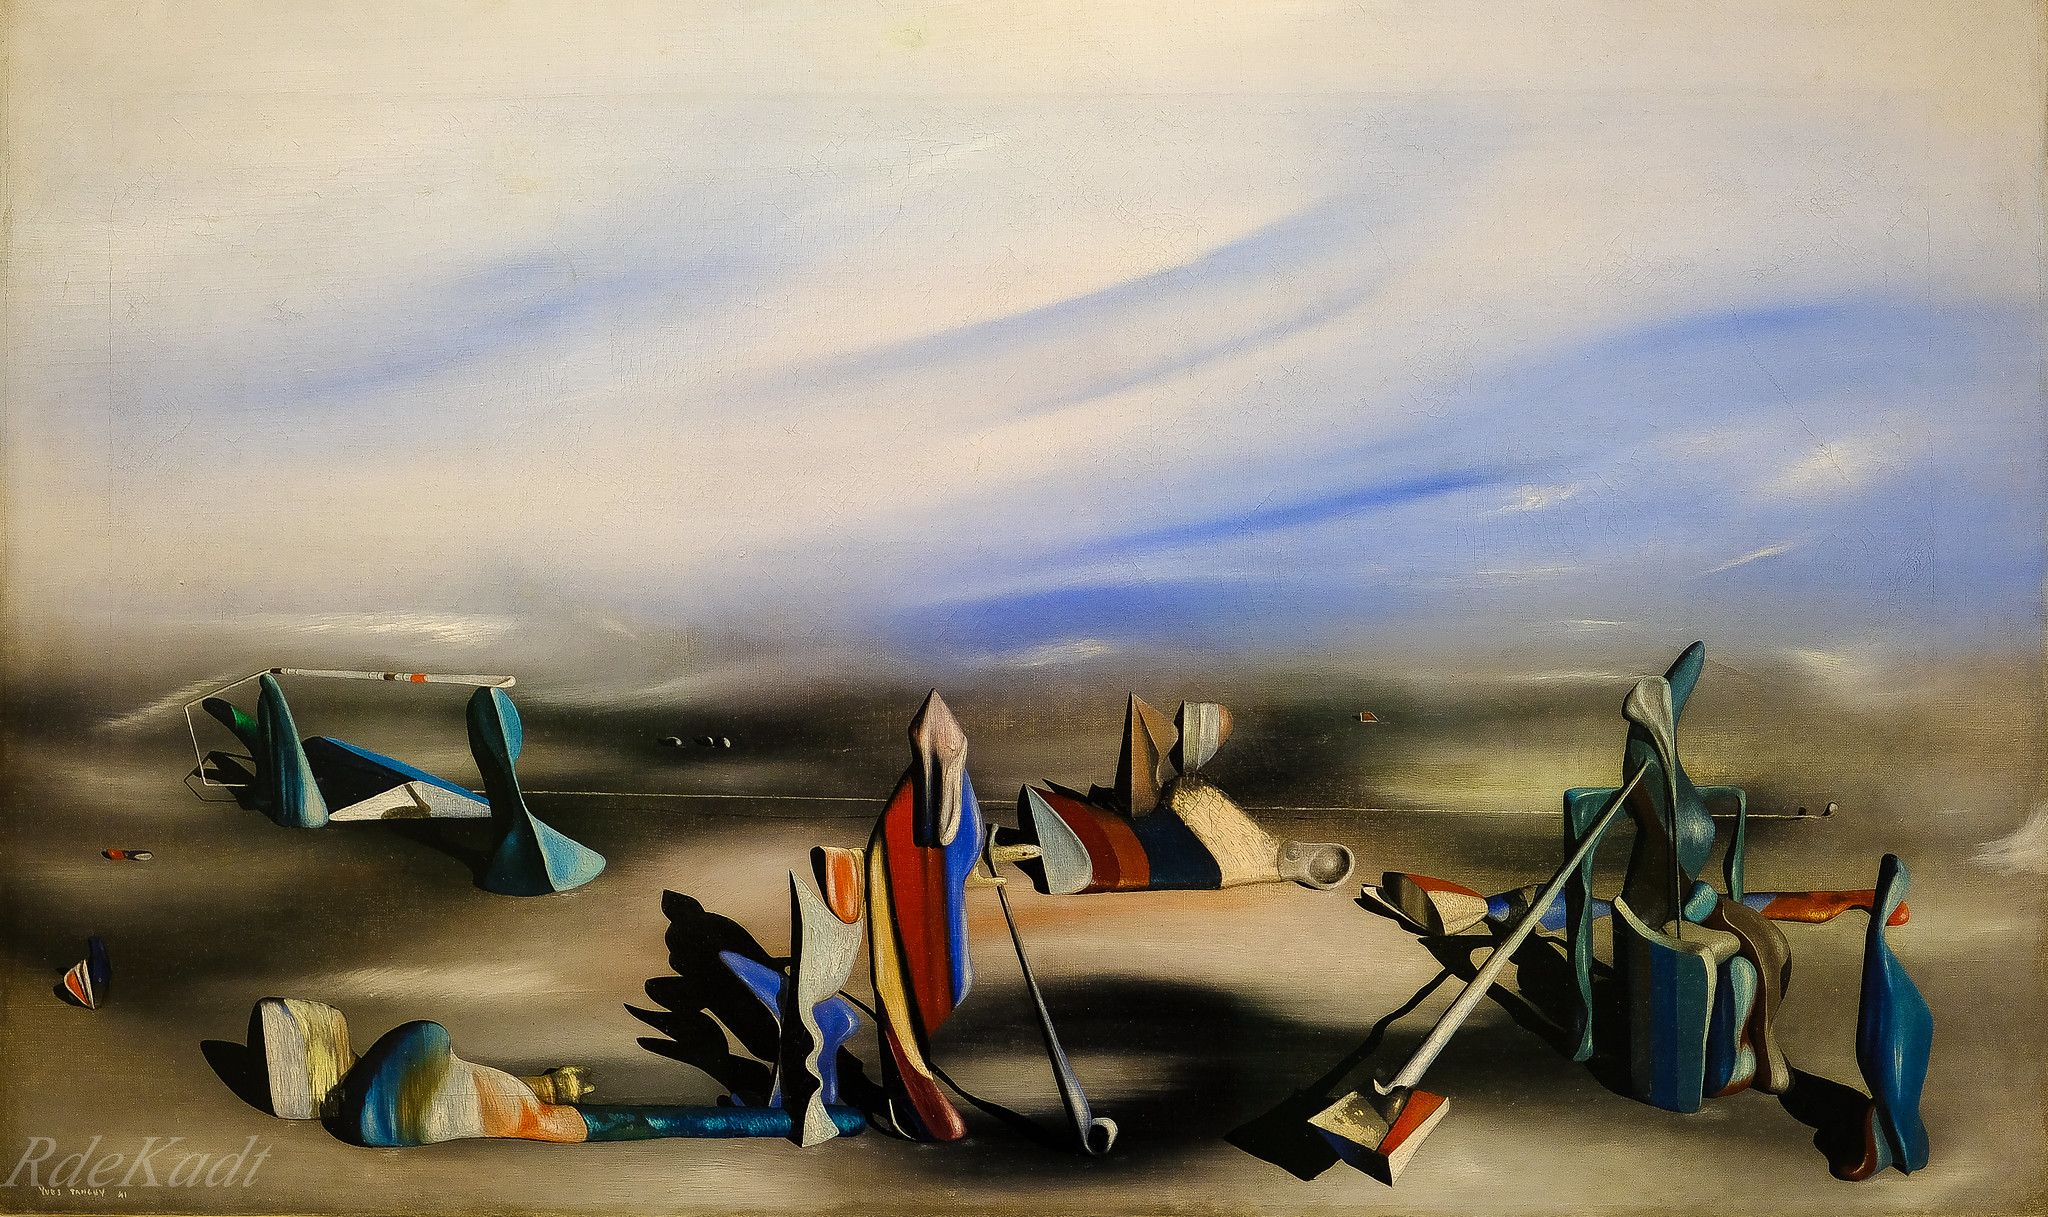 The Magicial Art of Yves Tanguy! In an Intederminate Place